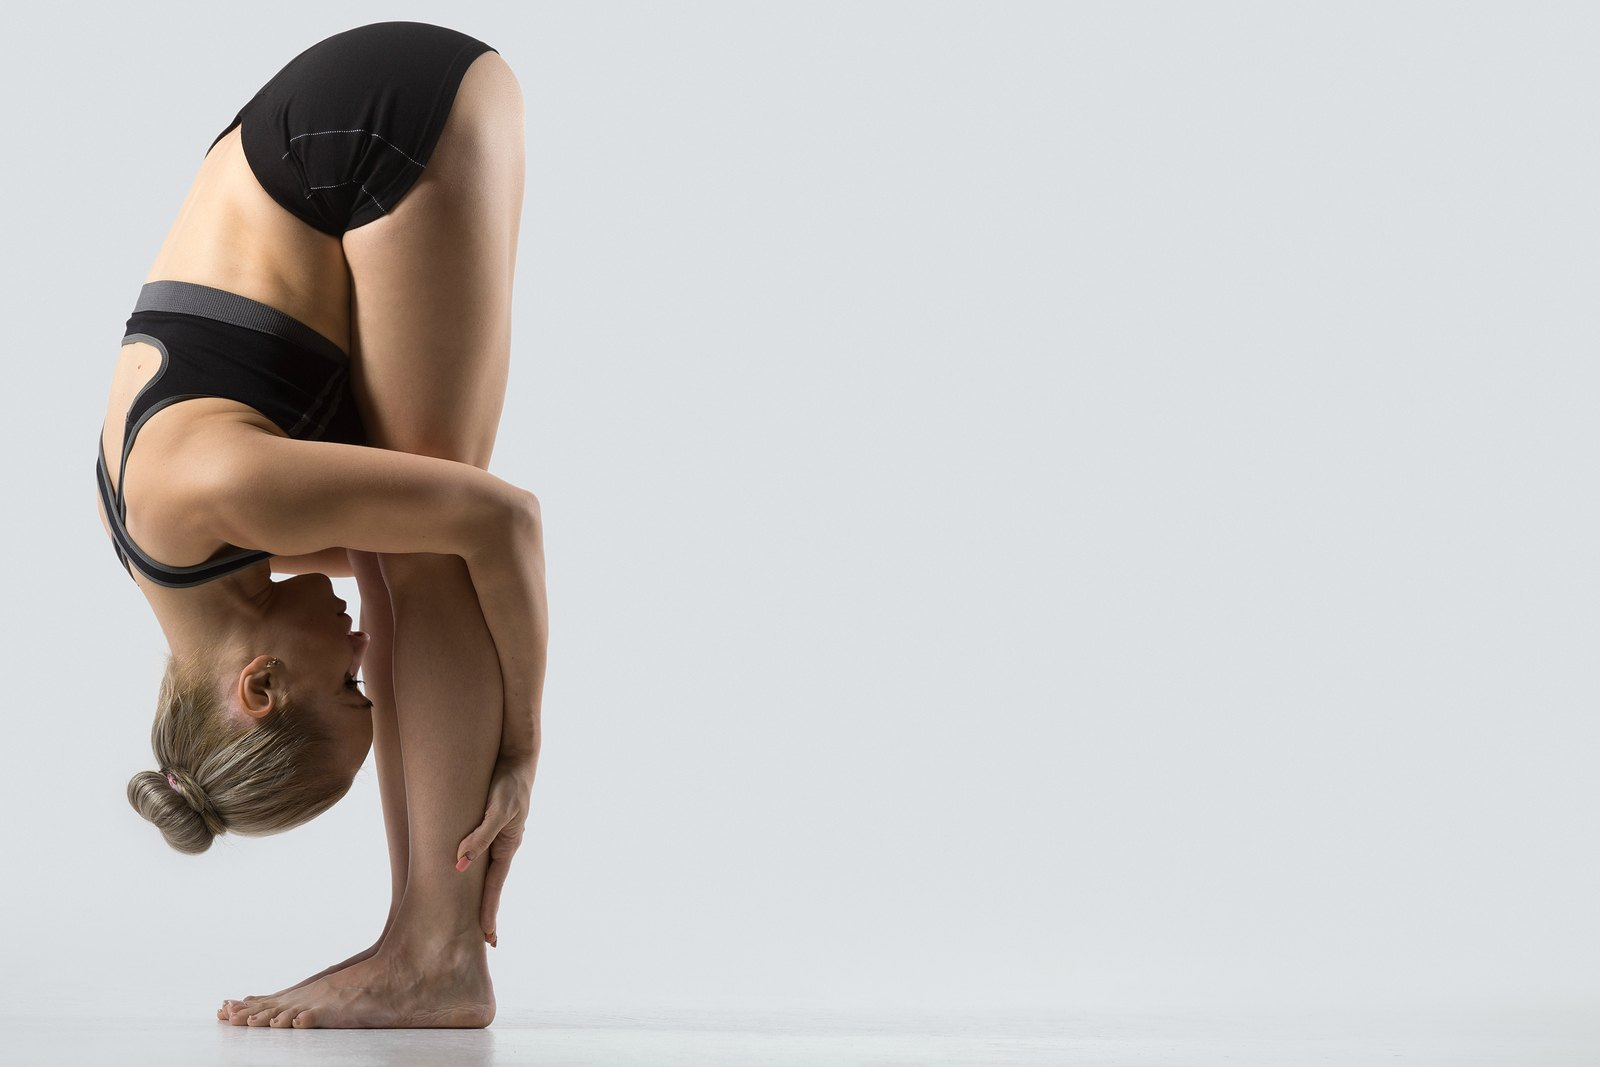 Practising Yoga regularly can help reduce back pain